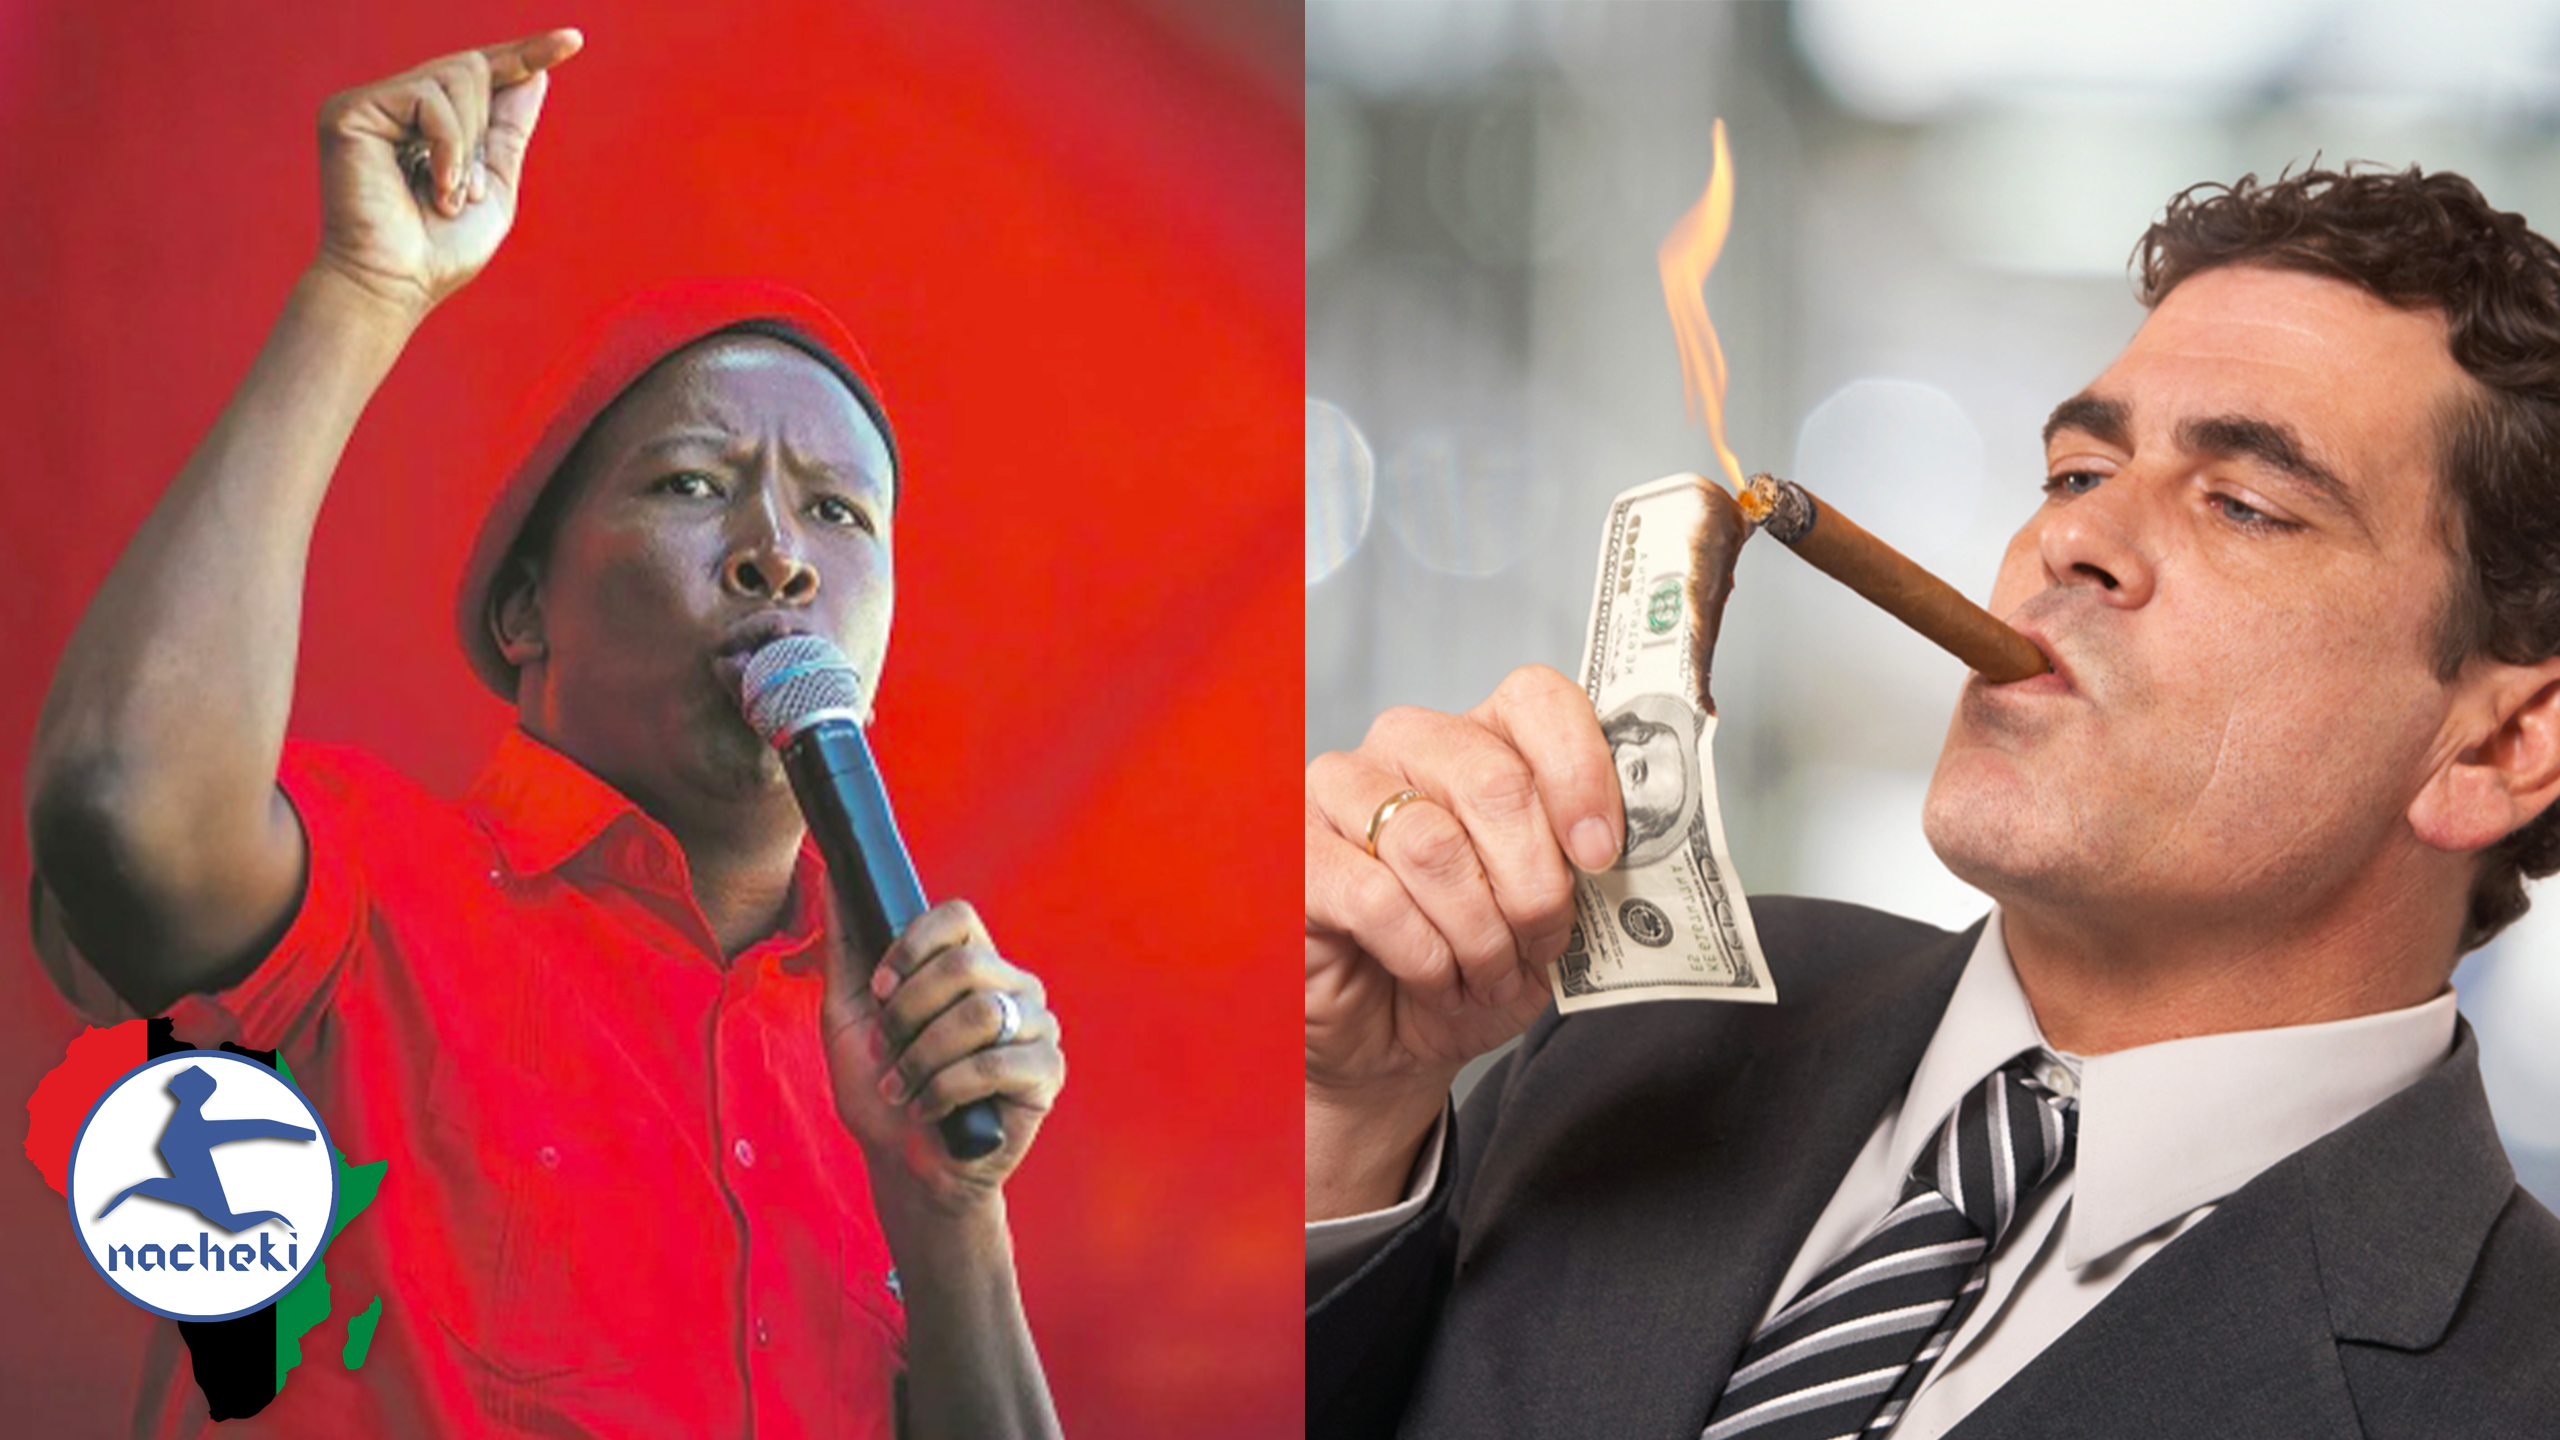 Julius Malema Freedom Day Speech on How Africa Has No Economic Freedom from the West